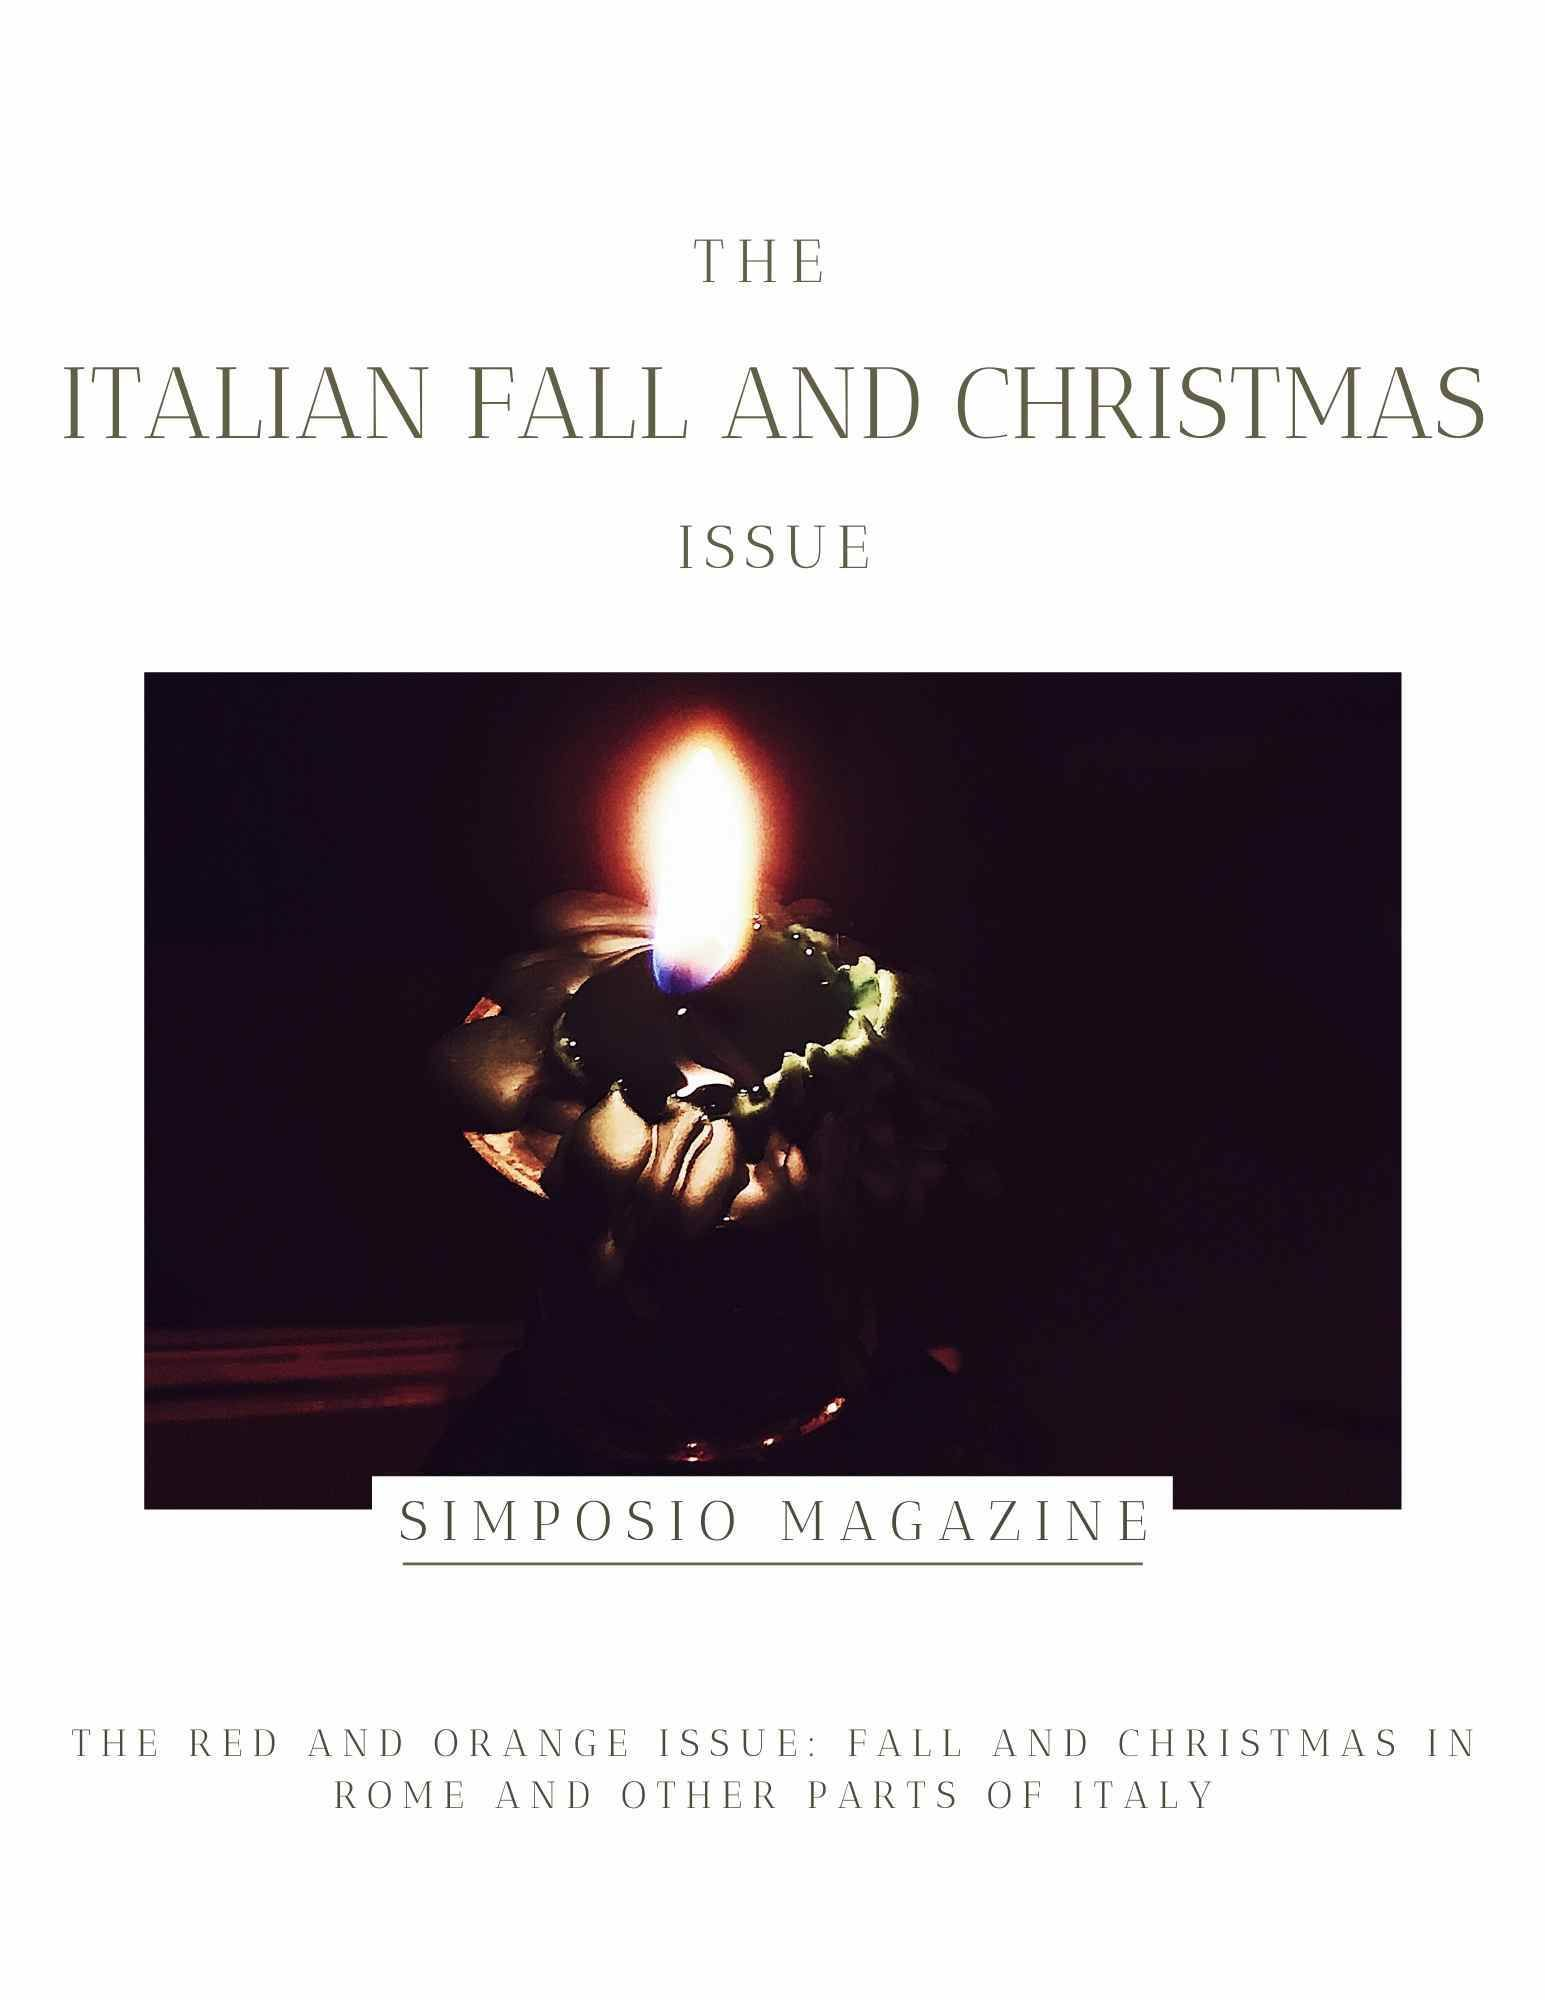 Halloween In Rome Italy 2020 Christmas traditions in Rome | Simposio: the Red & Orange Issue in